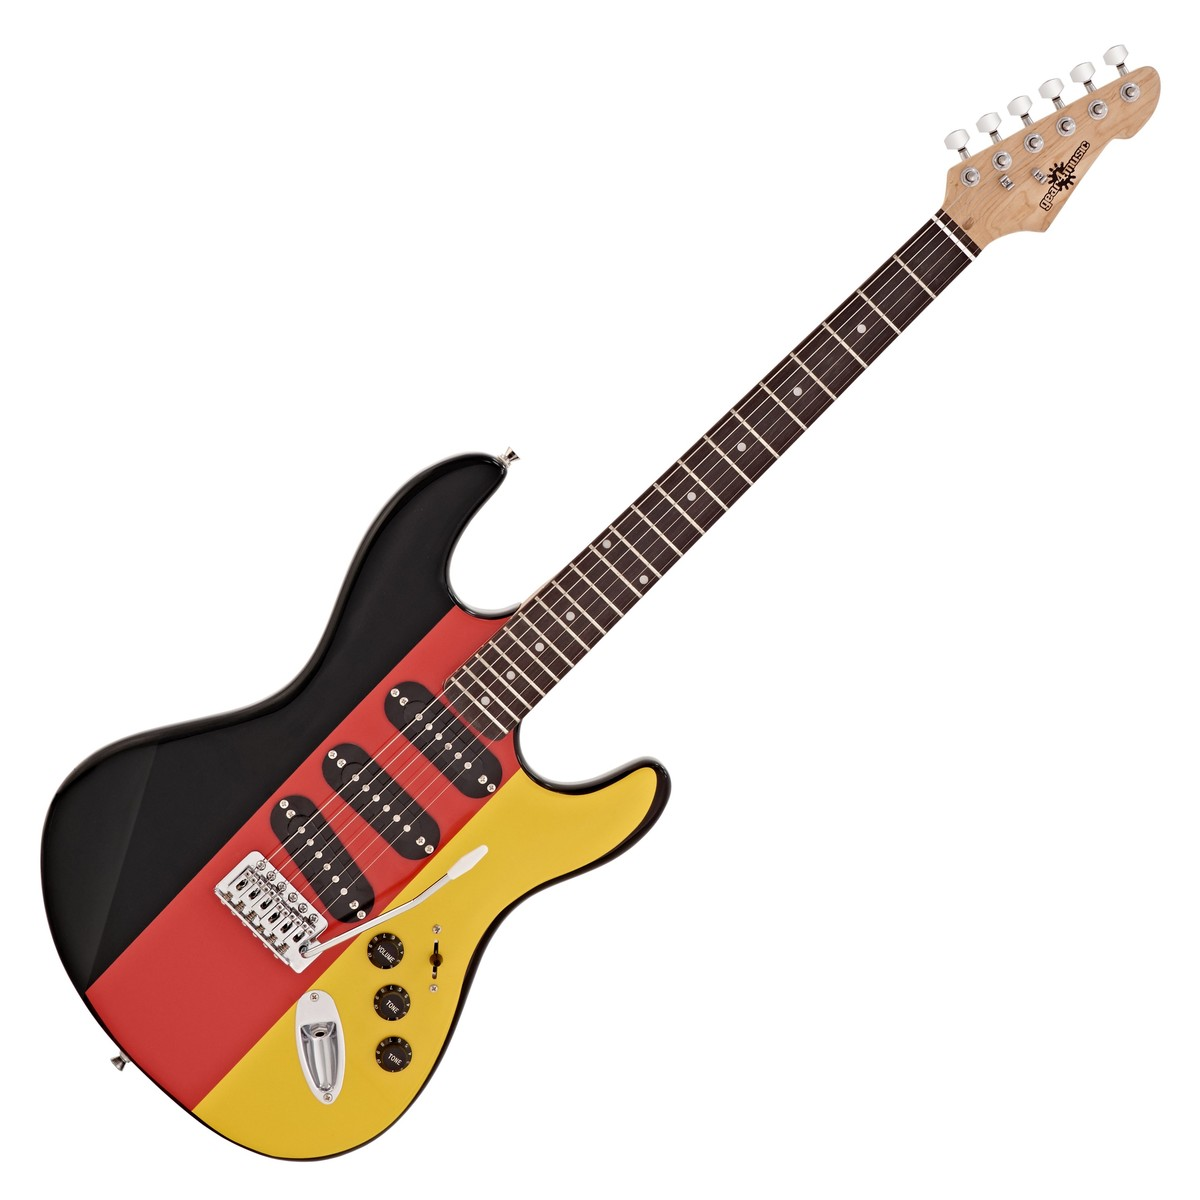 la electric guitar by gear4music german flag at gear4music. Black Bedroom Furniture Sets. Home Design Ideas